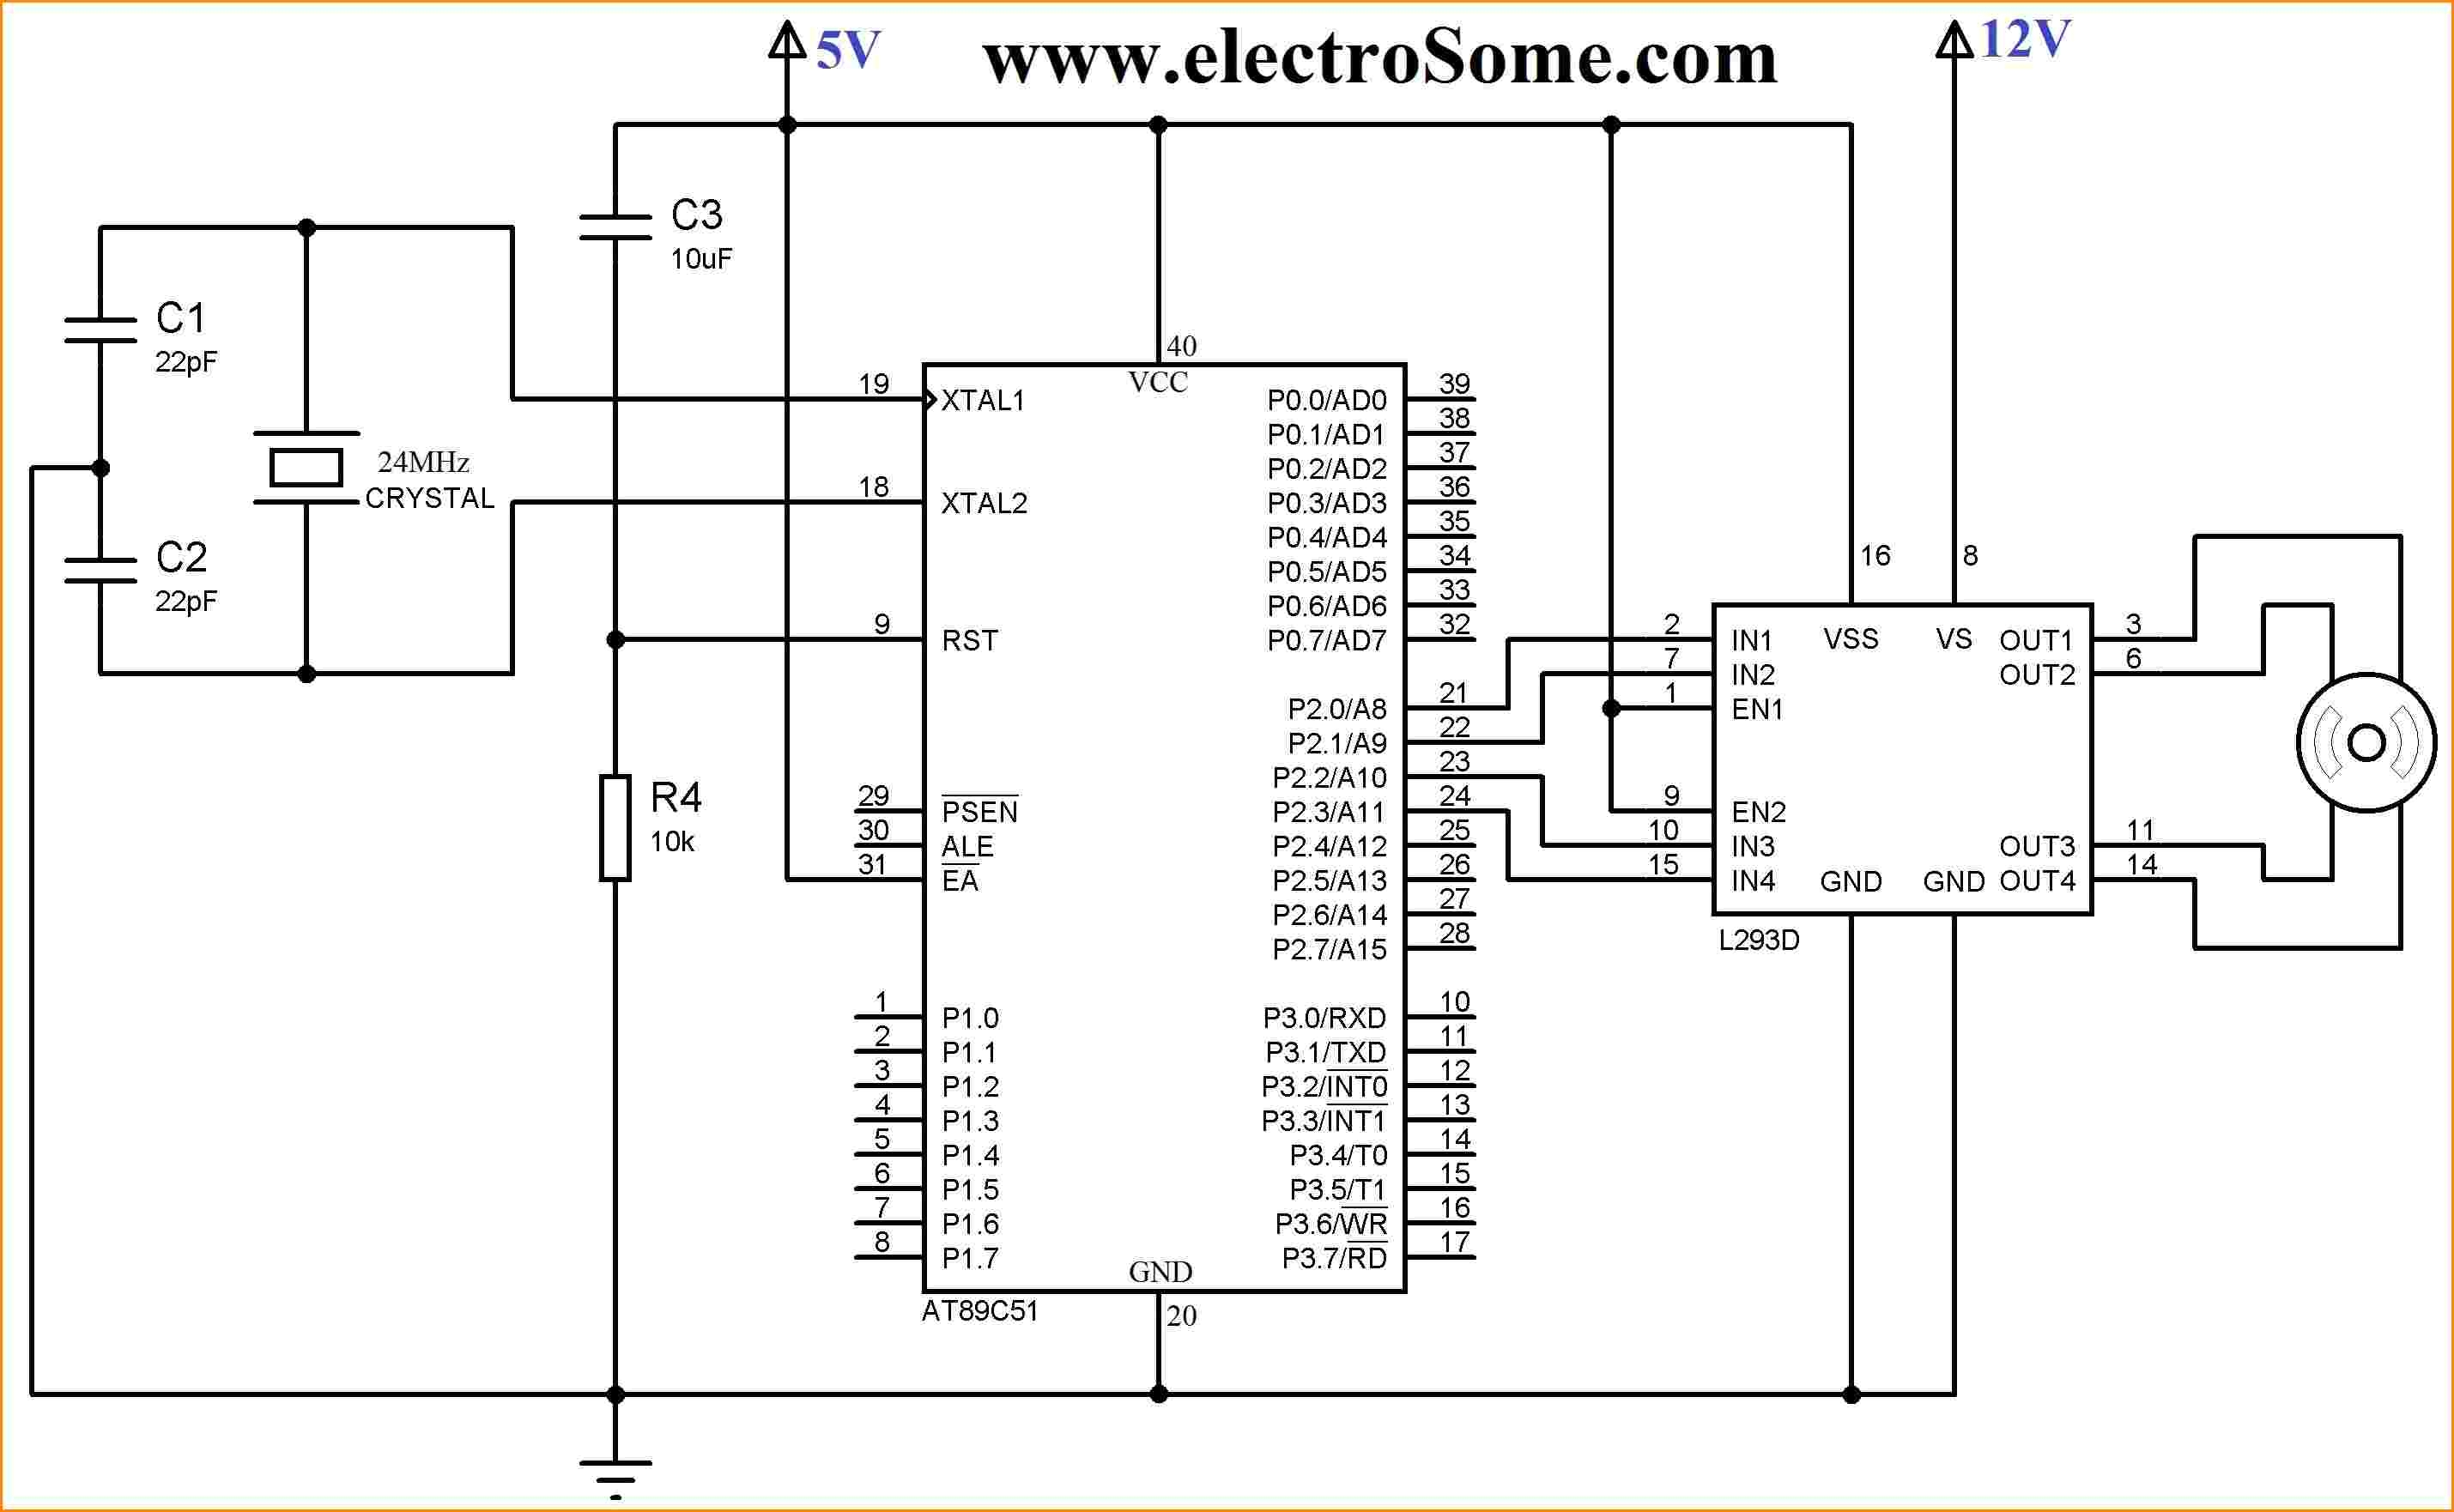 Harbor Freight Camera Wire Diagram | Wiring Diagram - Harbor Freight Security Camera Wiring Diagram